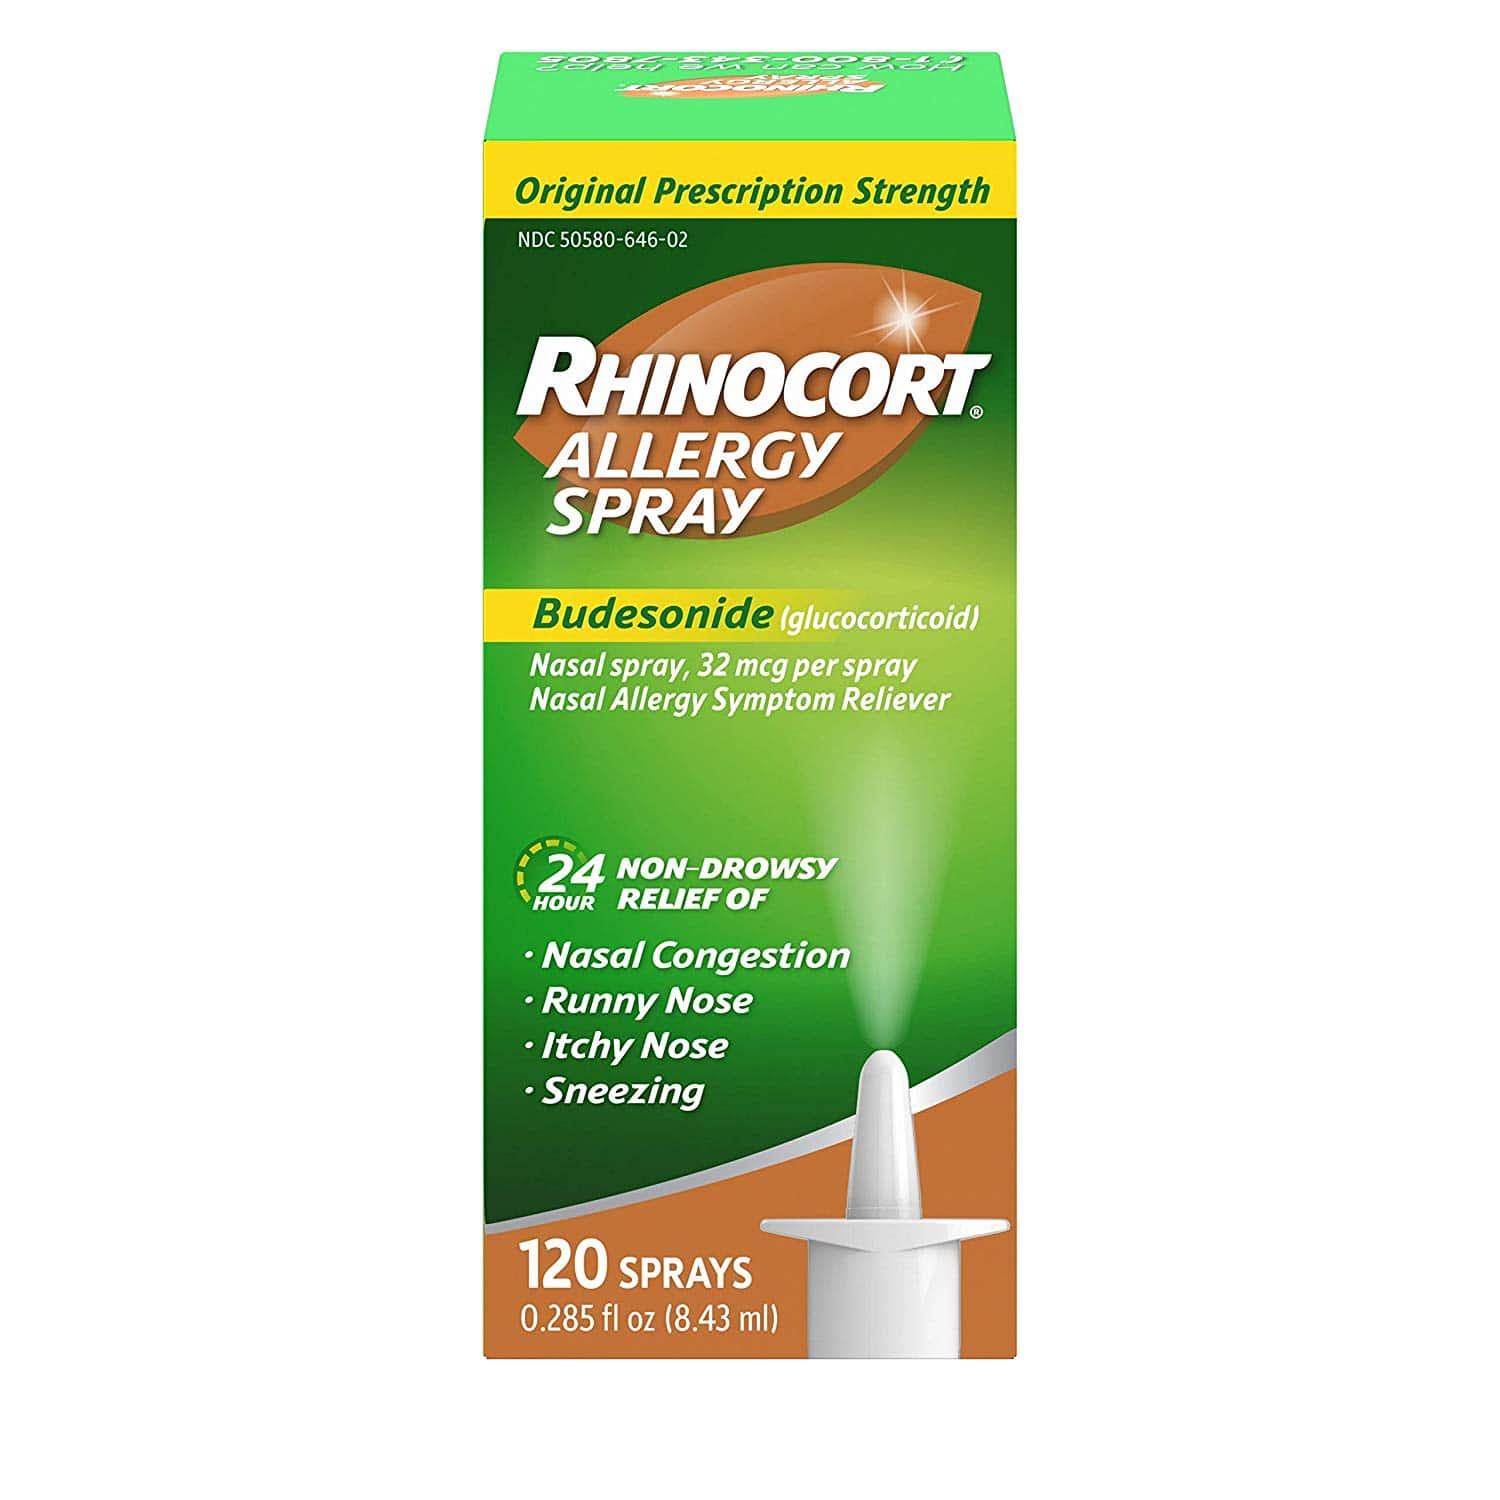 Rhinocort 24 Hour Allergy Relief Budesonide Nasal Spray for $7.04 A/C with S&S